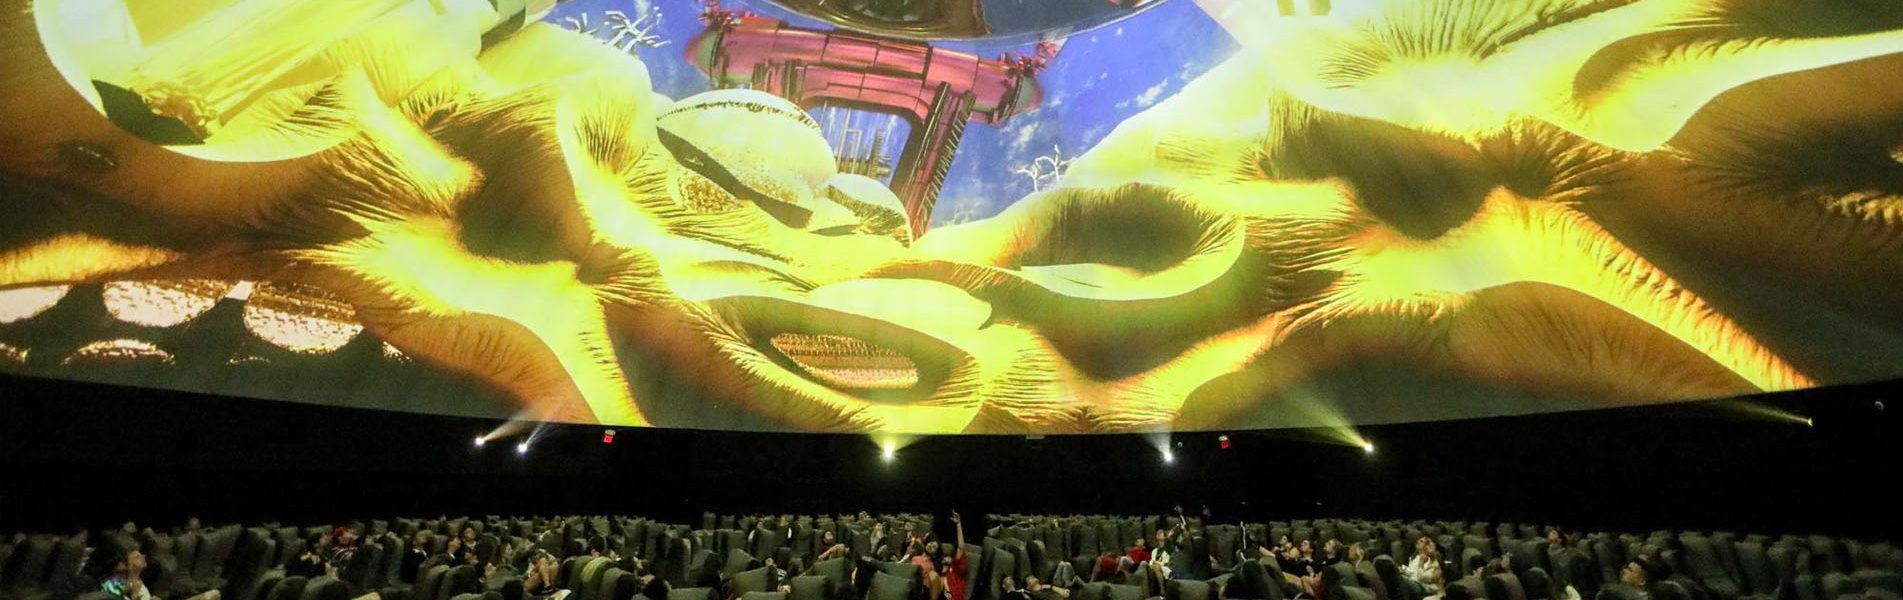 120ft Coachella Projection Theater Dome